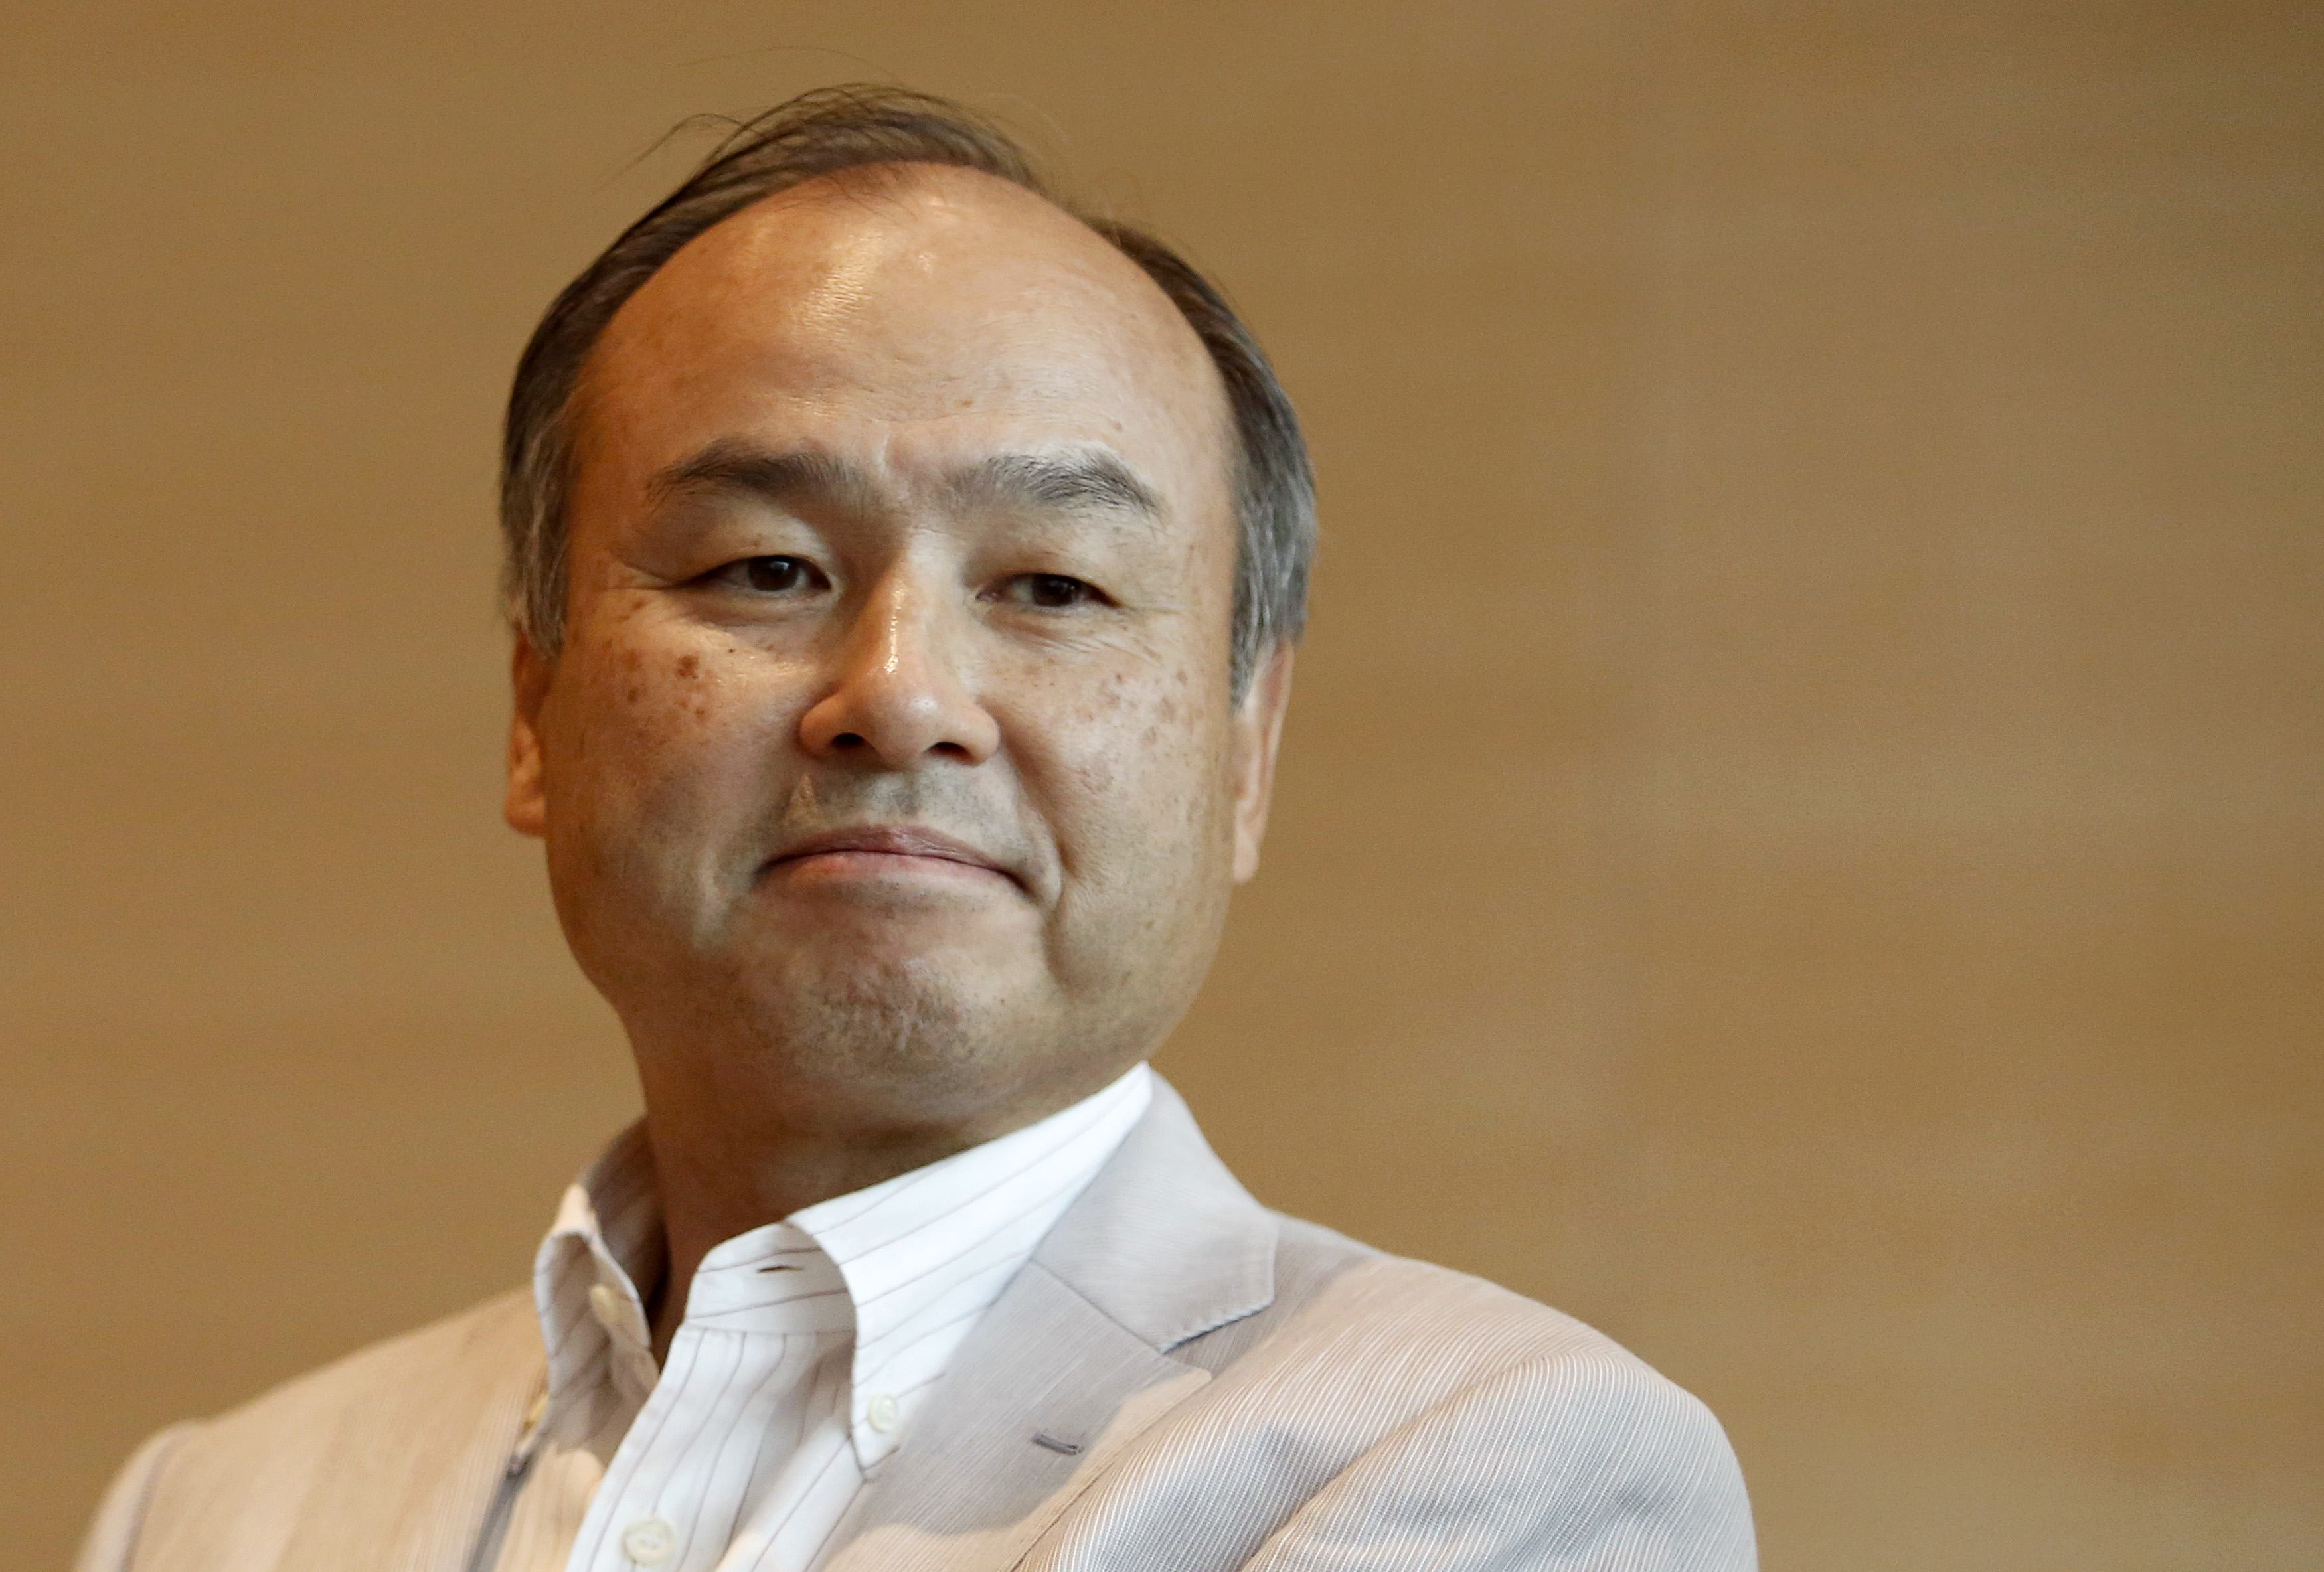 SoftBank Corp. Chief Executive Masayoshi Son attends a roundtable discussion with journalists at its headquarters in Tokyo, in this June 17, 2014 file photo. SoftBank, Japan's third-largest mobile operator, is an aggressive acquirer that last year bought No.3 U.S. wireless company Sprint Corp, and is in talks to buy fourth-ranked T-Mobile US Inc. It is also a significant shareholder in Chinese e-commerce giant Alibaba Group, and has stakes in mobile game companies Supercell and Gungho Online Entertainment Inc. It plans to amass 5,000 companies within its empire by 2040, up from nearly 900 now. REUTERS/Yuya Shino/Files (JAPAN - Tags: BUSINESS TELECOMS)